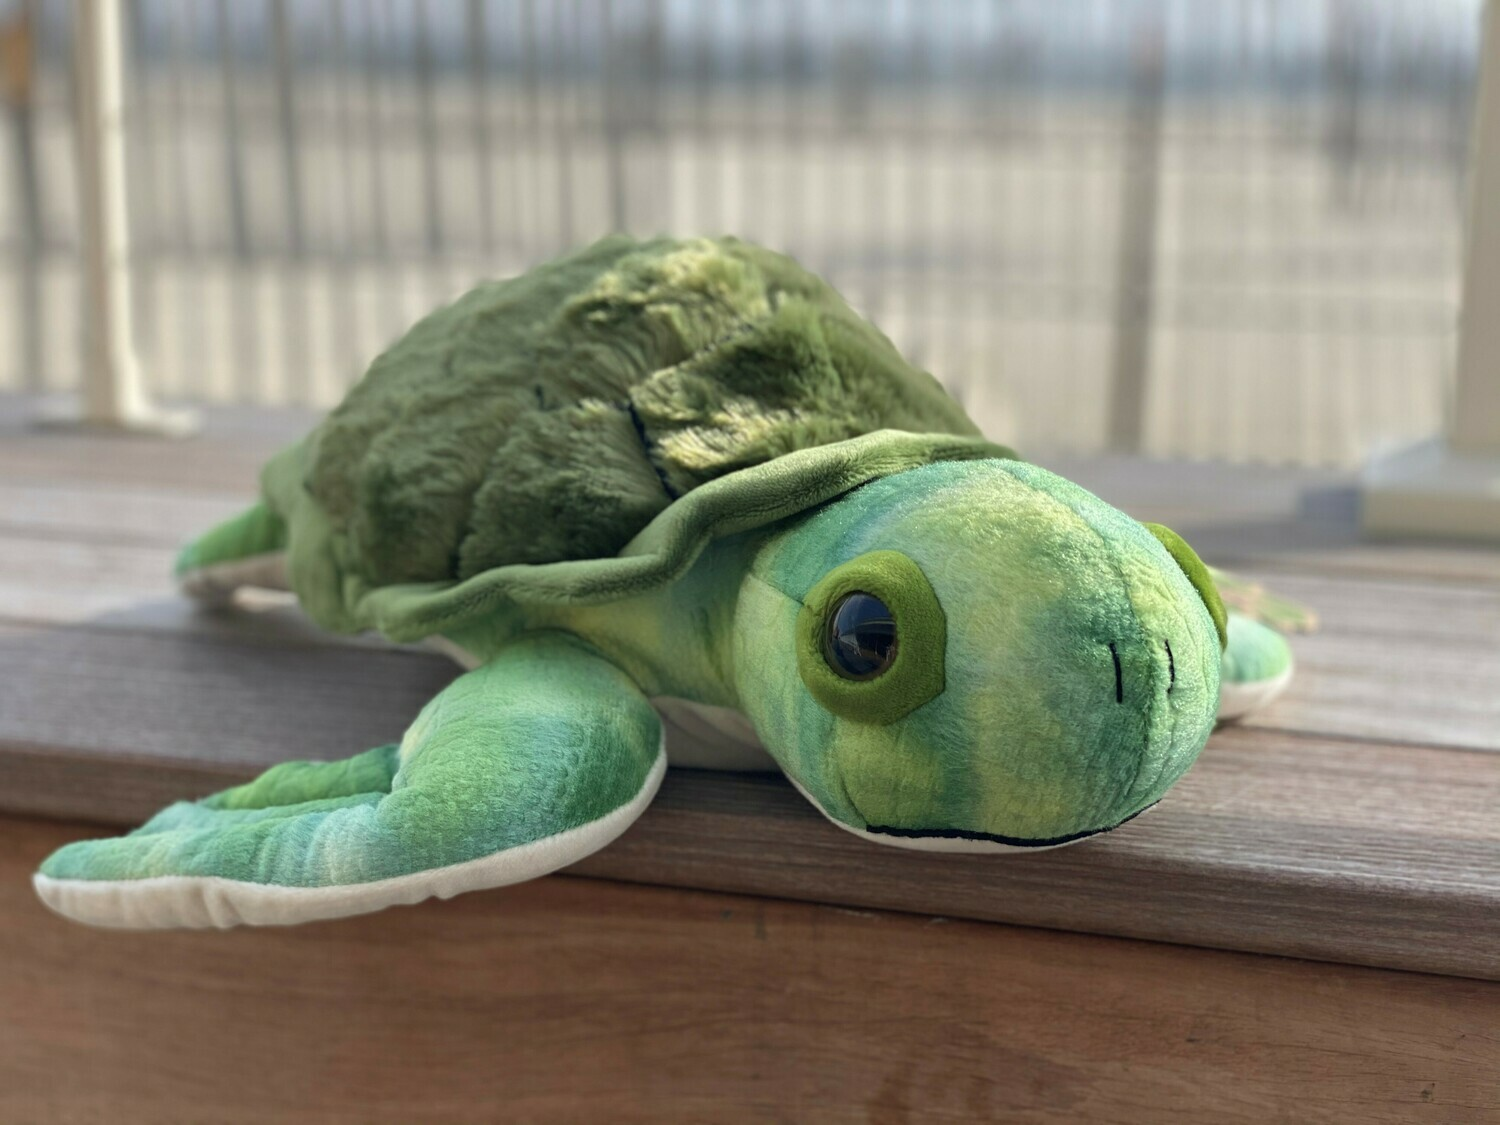 Sea Turtle Plush - Large with Green Shell